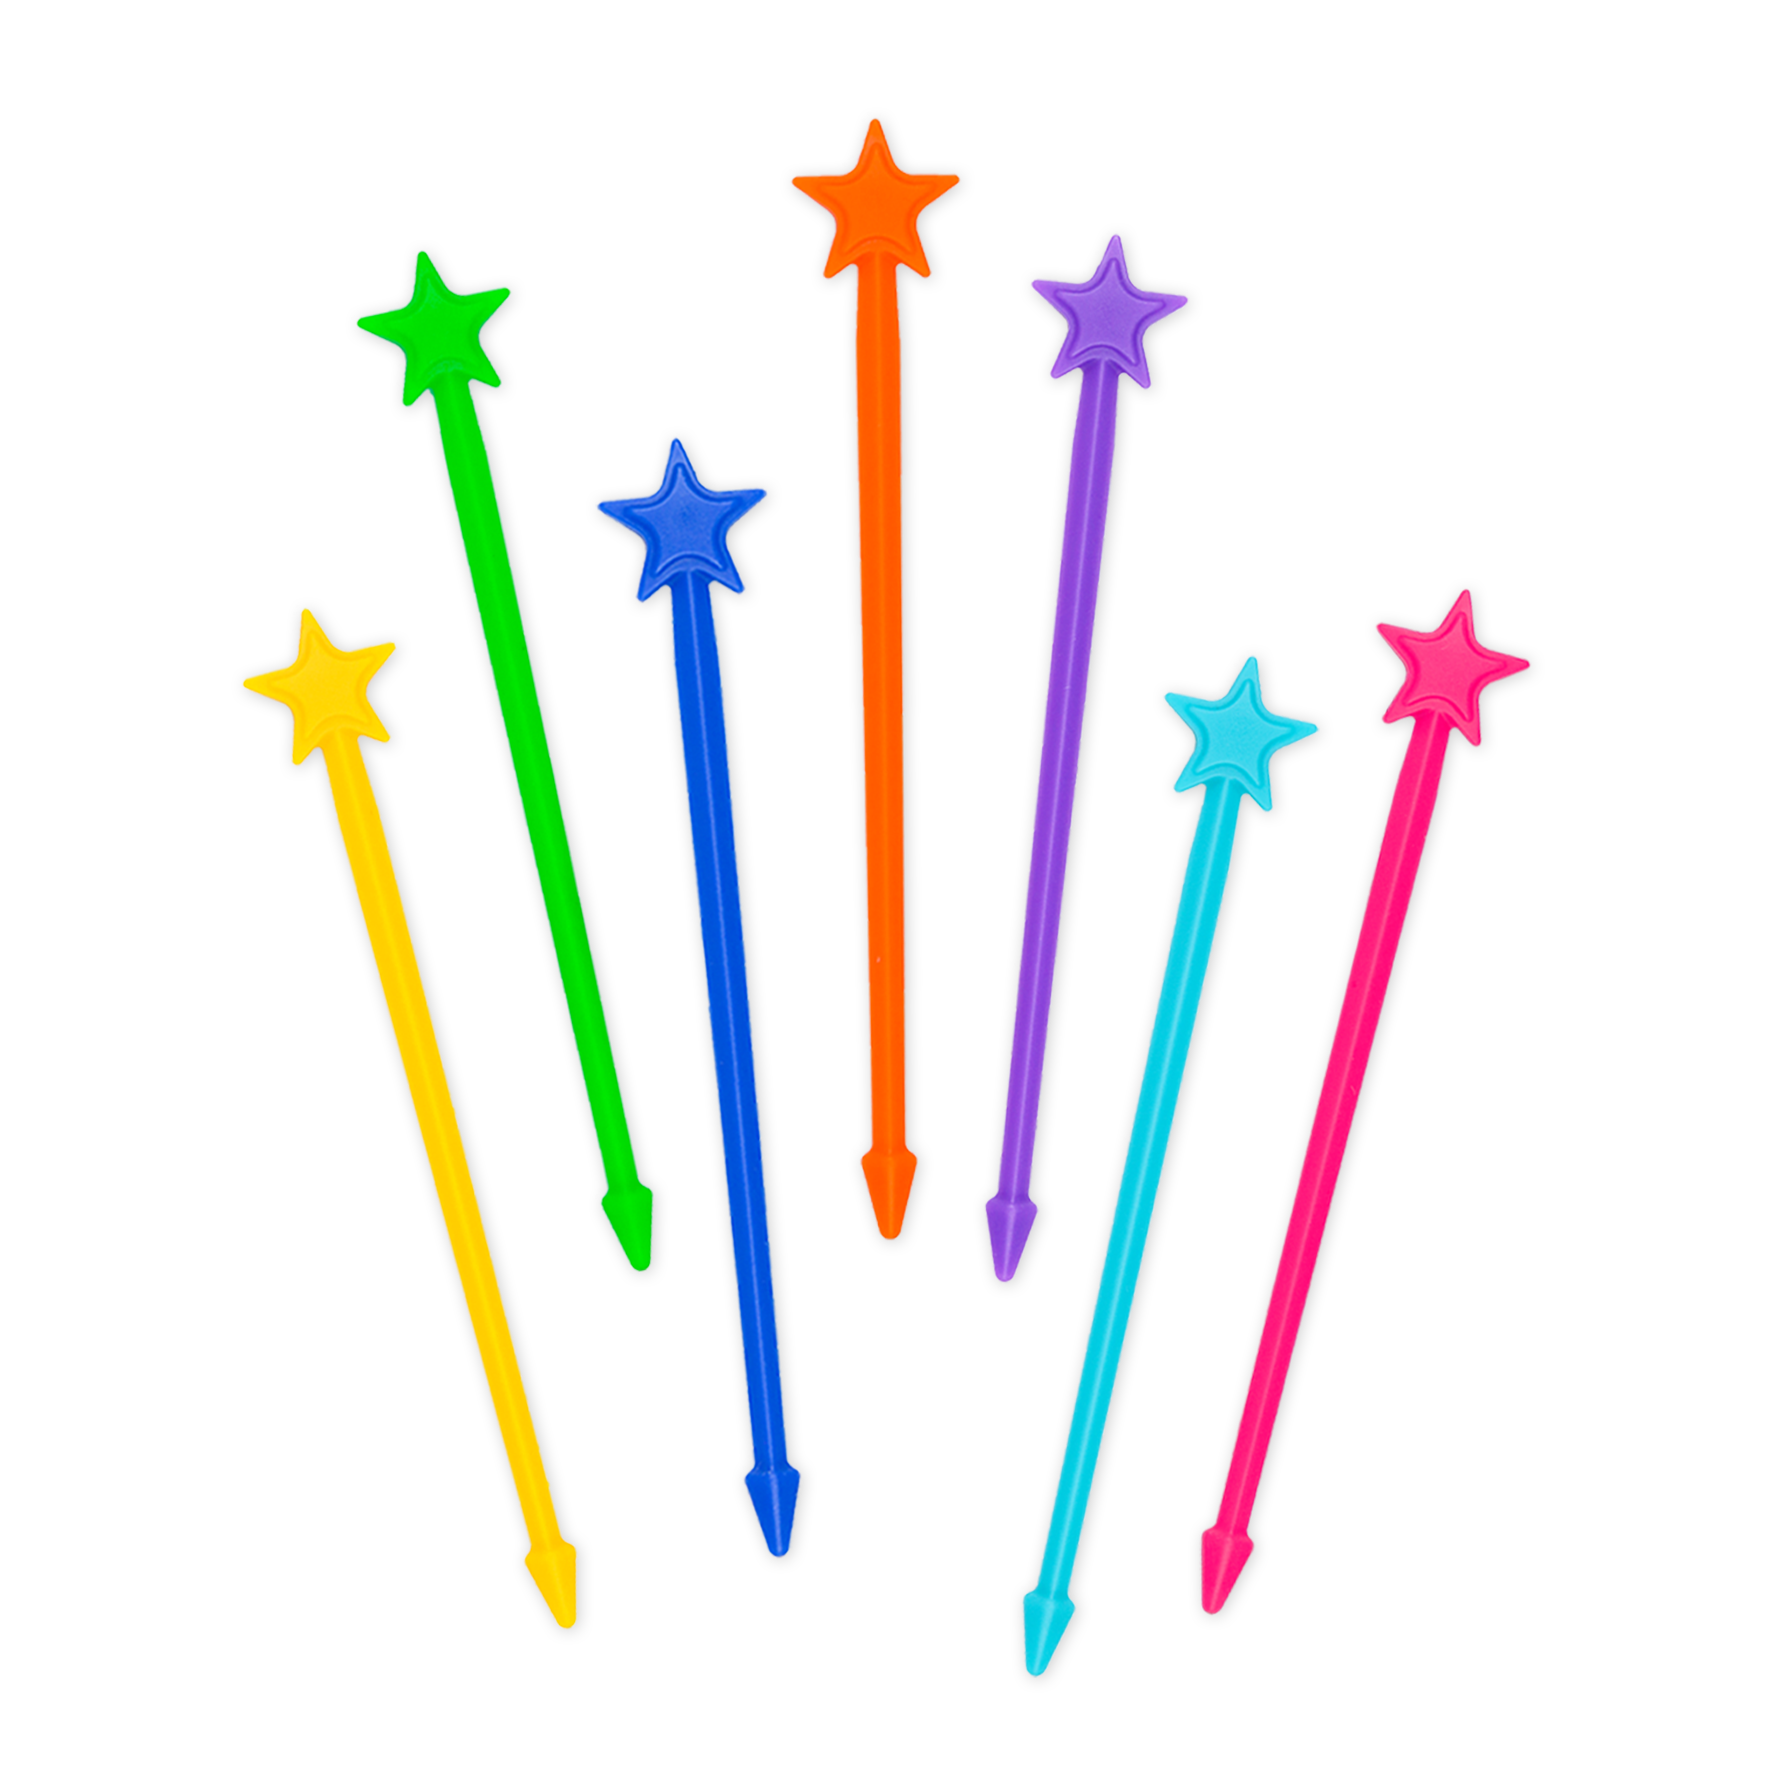 Lunch Punch Stix 7-pack - Rainbow-1